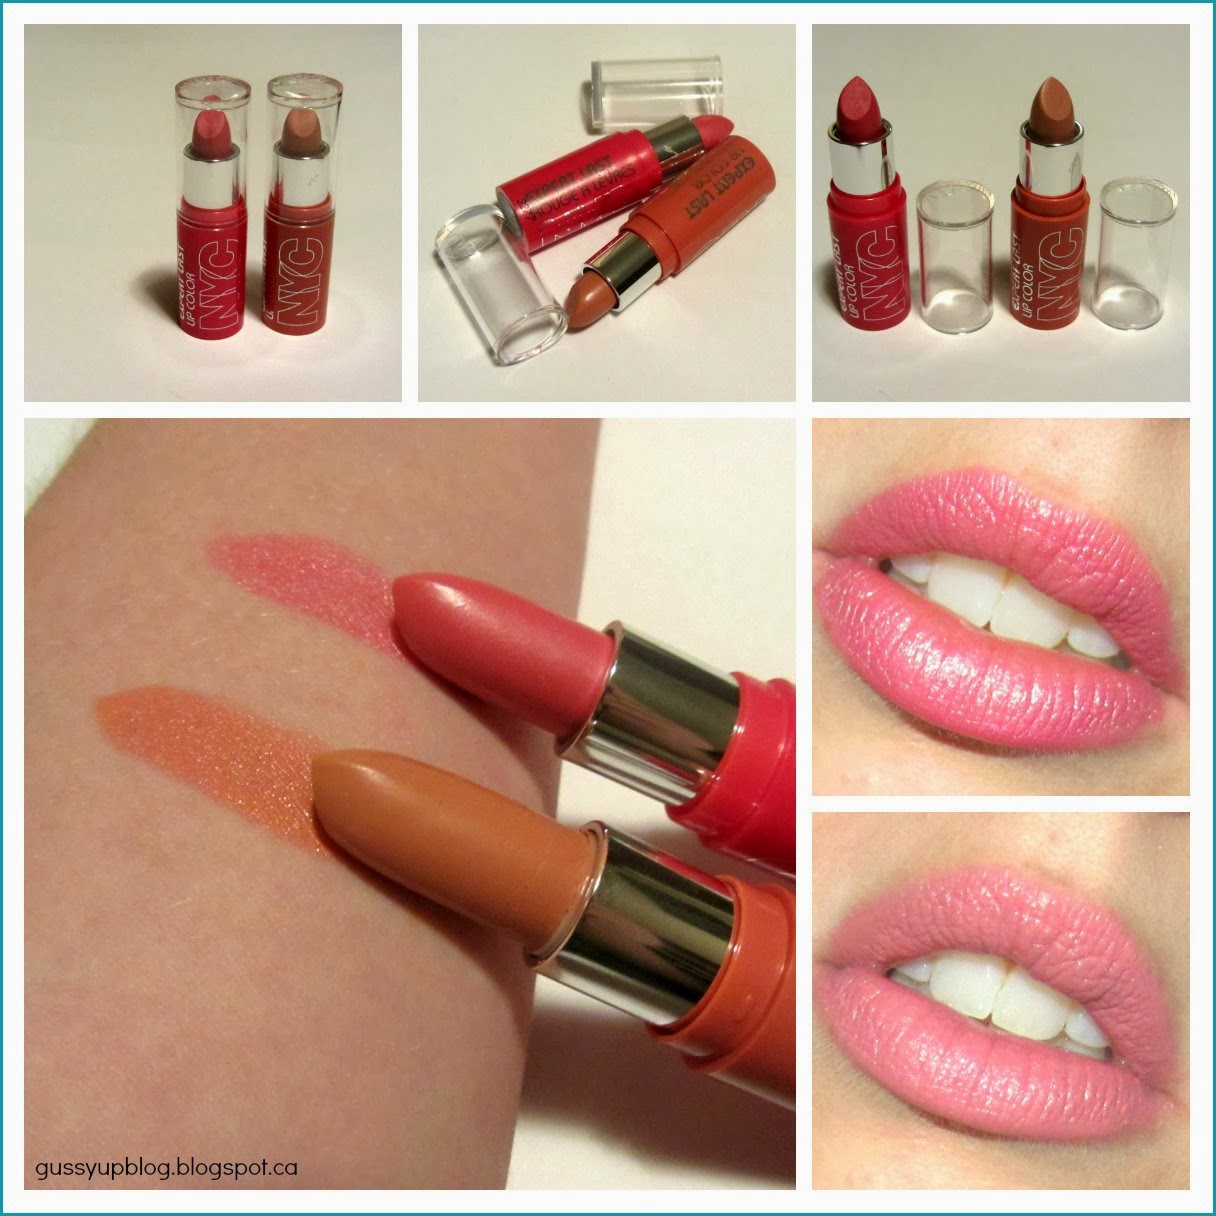 Review and Swatches: NEW NYC Expert Last Lipsticks in Modern Love and Smooch